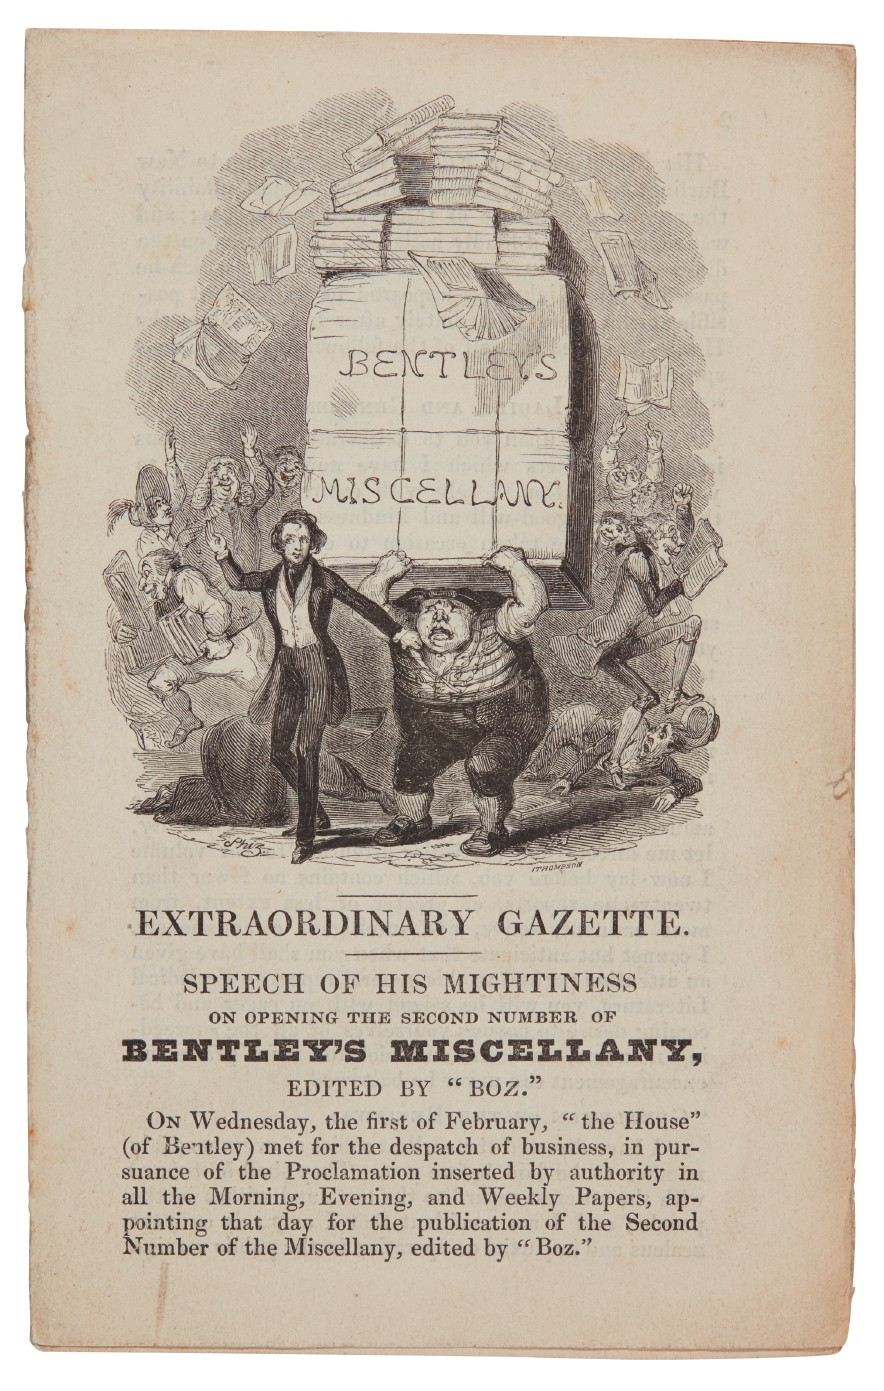 Dickens, The Extraordinary Gazette, 1837, Bentley's Miscellany, separately issued smaller size format